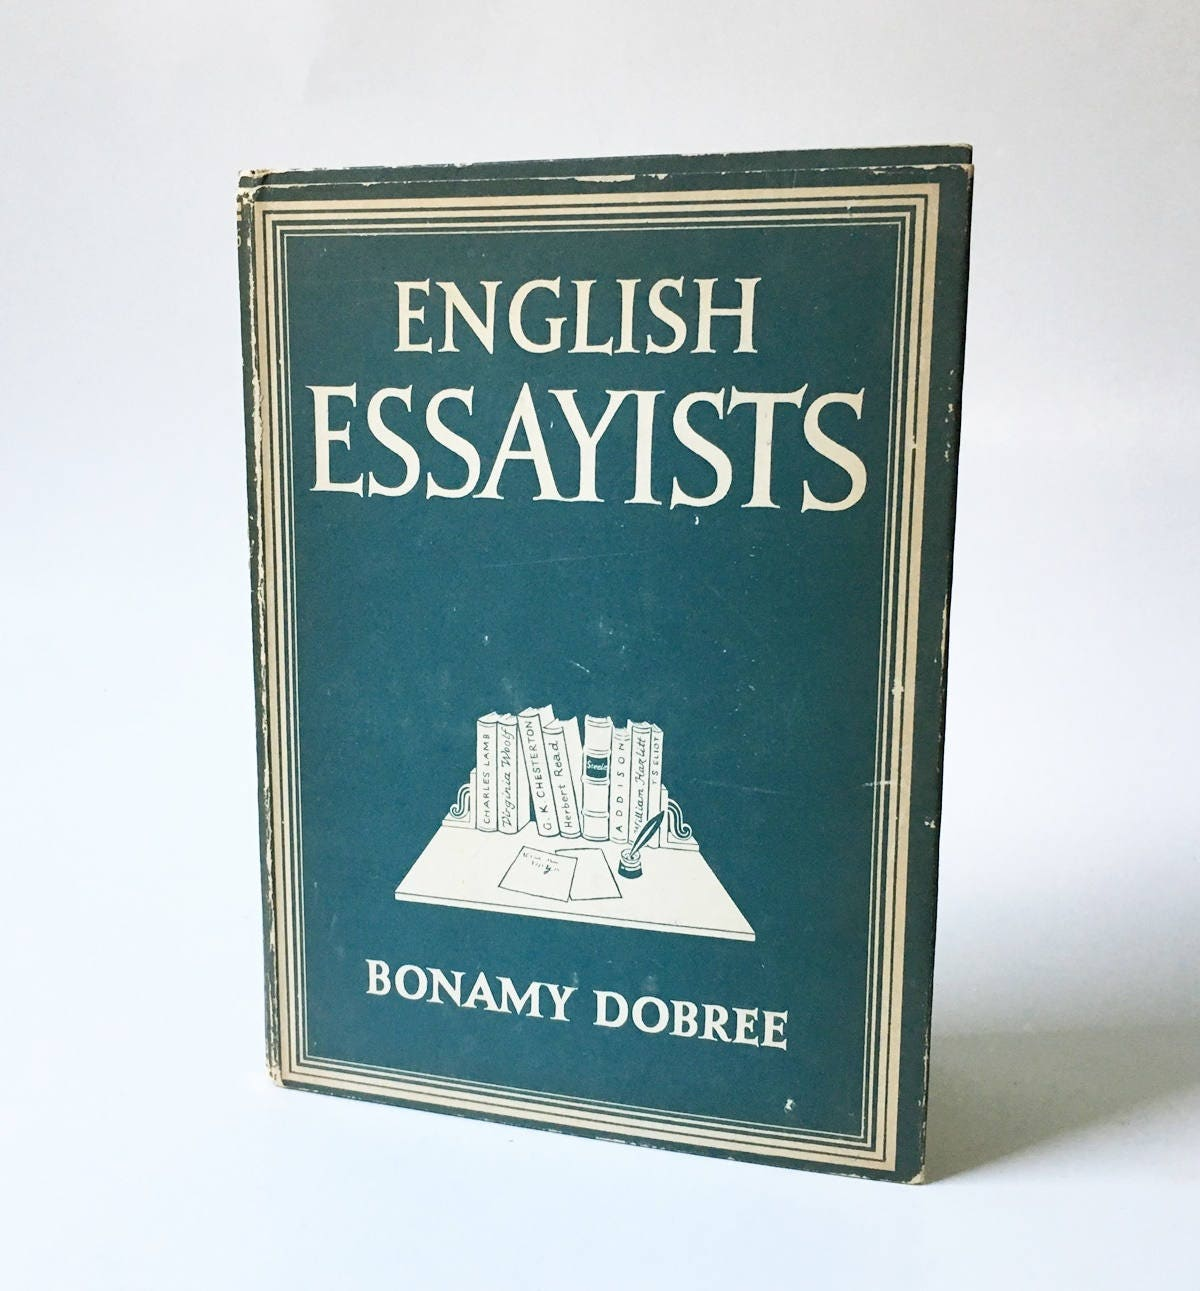 bonamy dobree english essayists Bonamy dobree english essayists bonamy dobree english essayists you can be confident that when you make a purchase through abaaorg, the item is sold by an abaa.